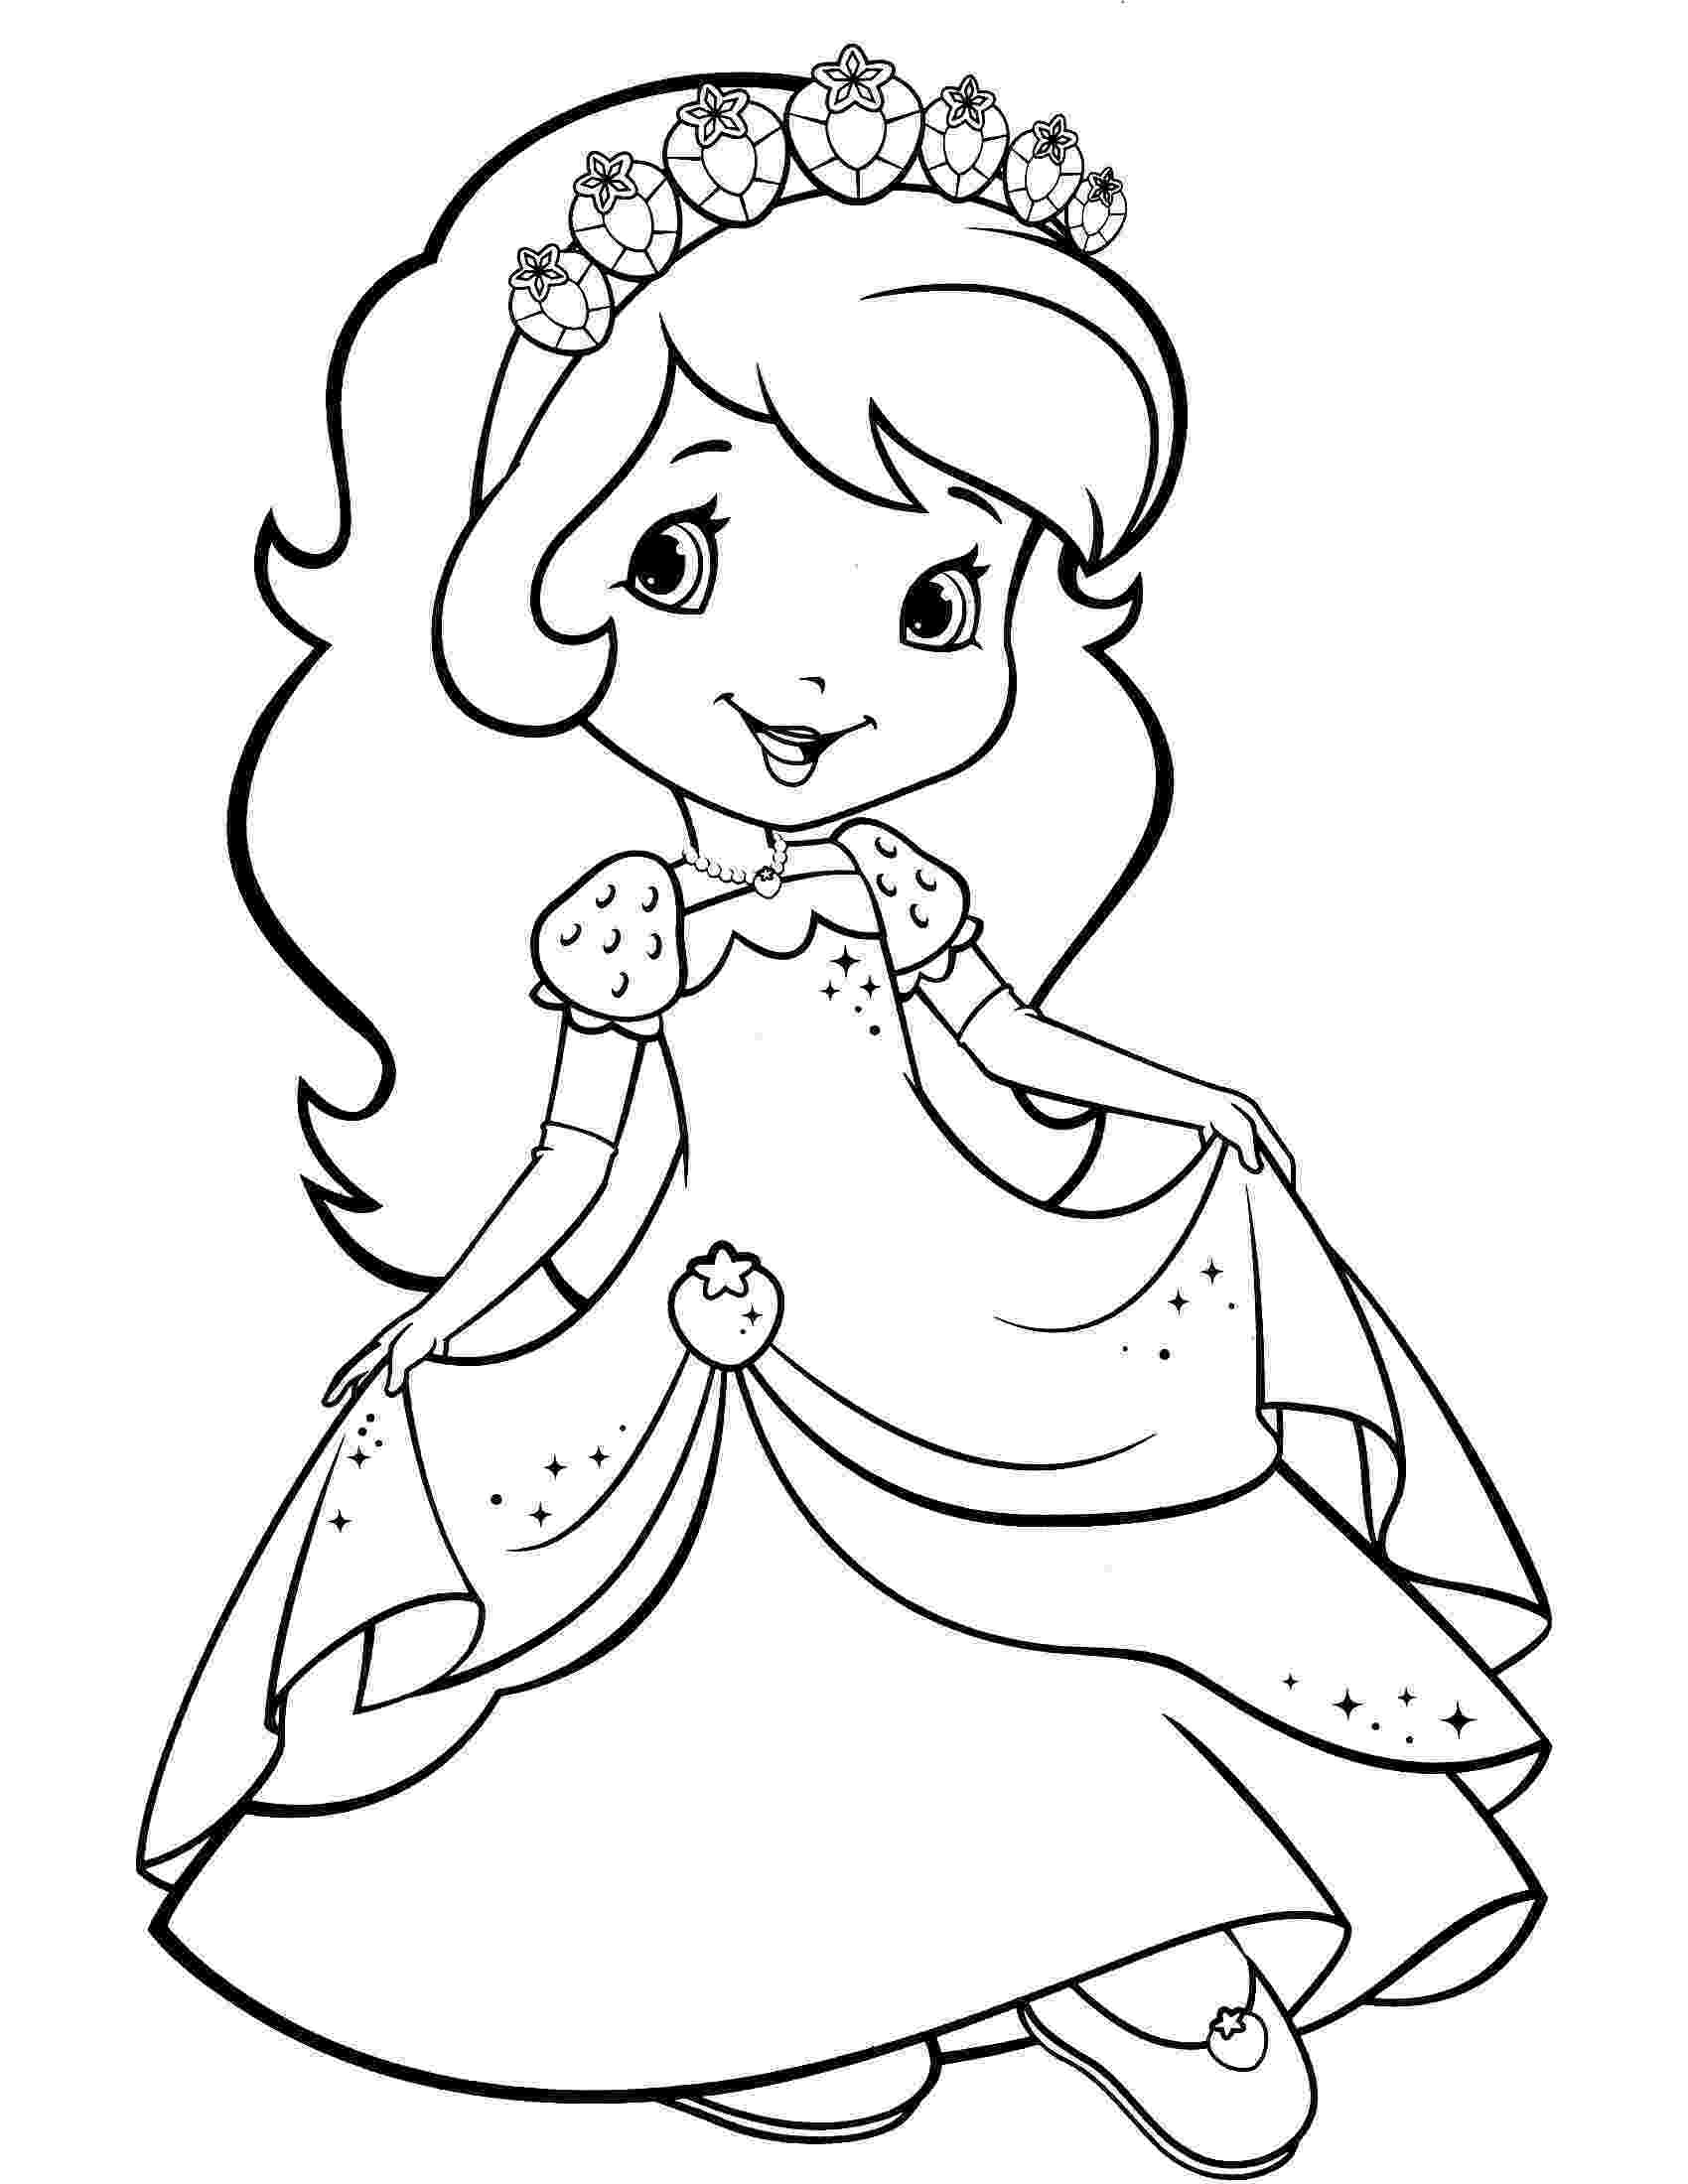 strawberry shortcake coloring pictures strawberry shortcake coloring pages getcoloringpagescom pictures shortcake strawberry coloring